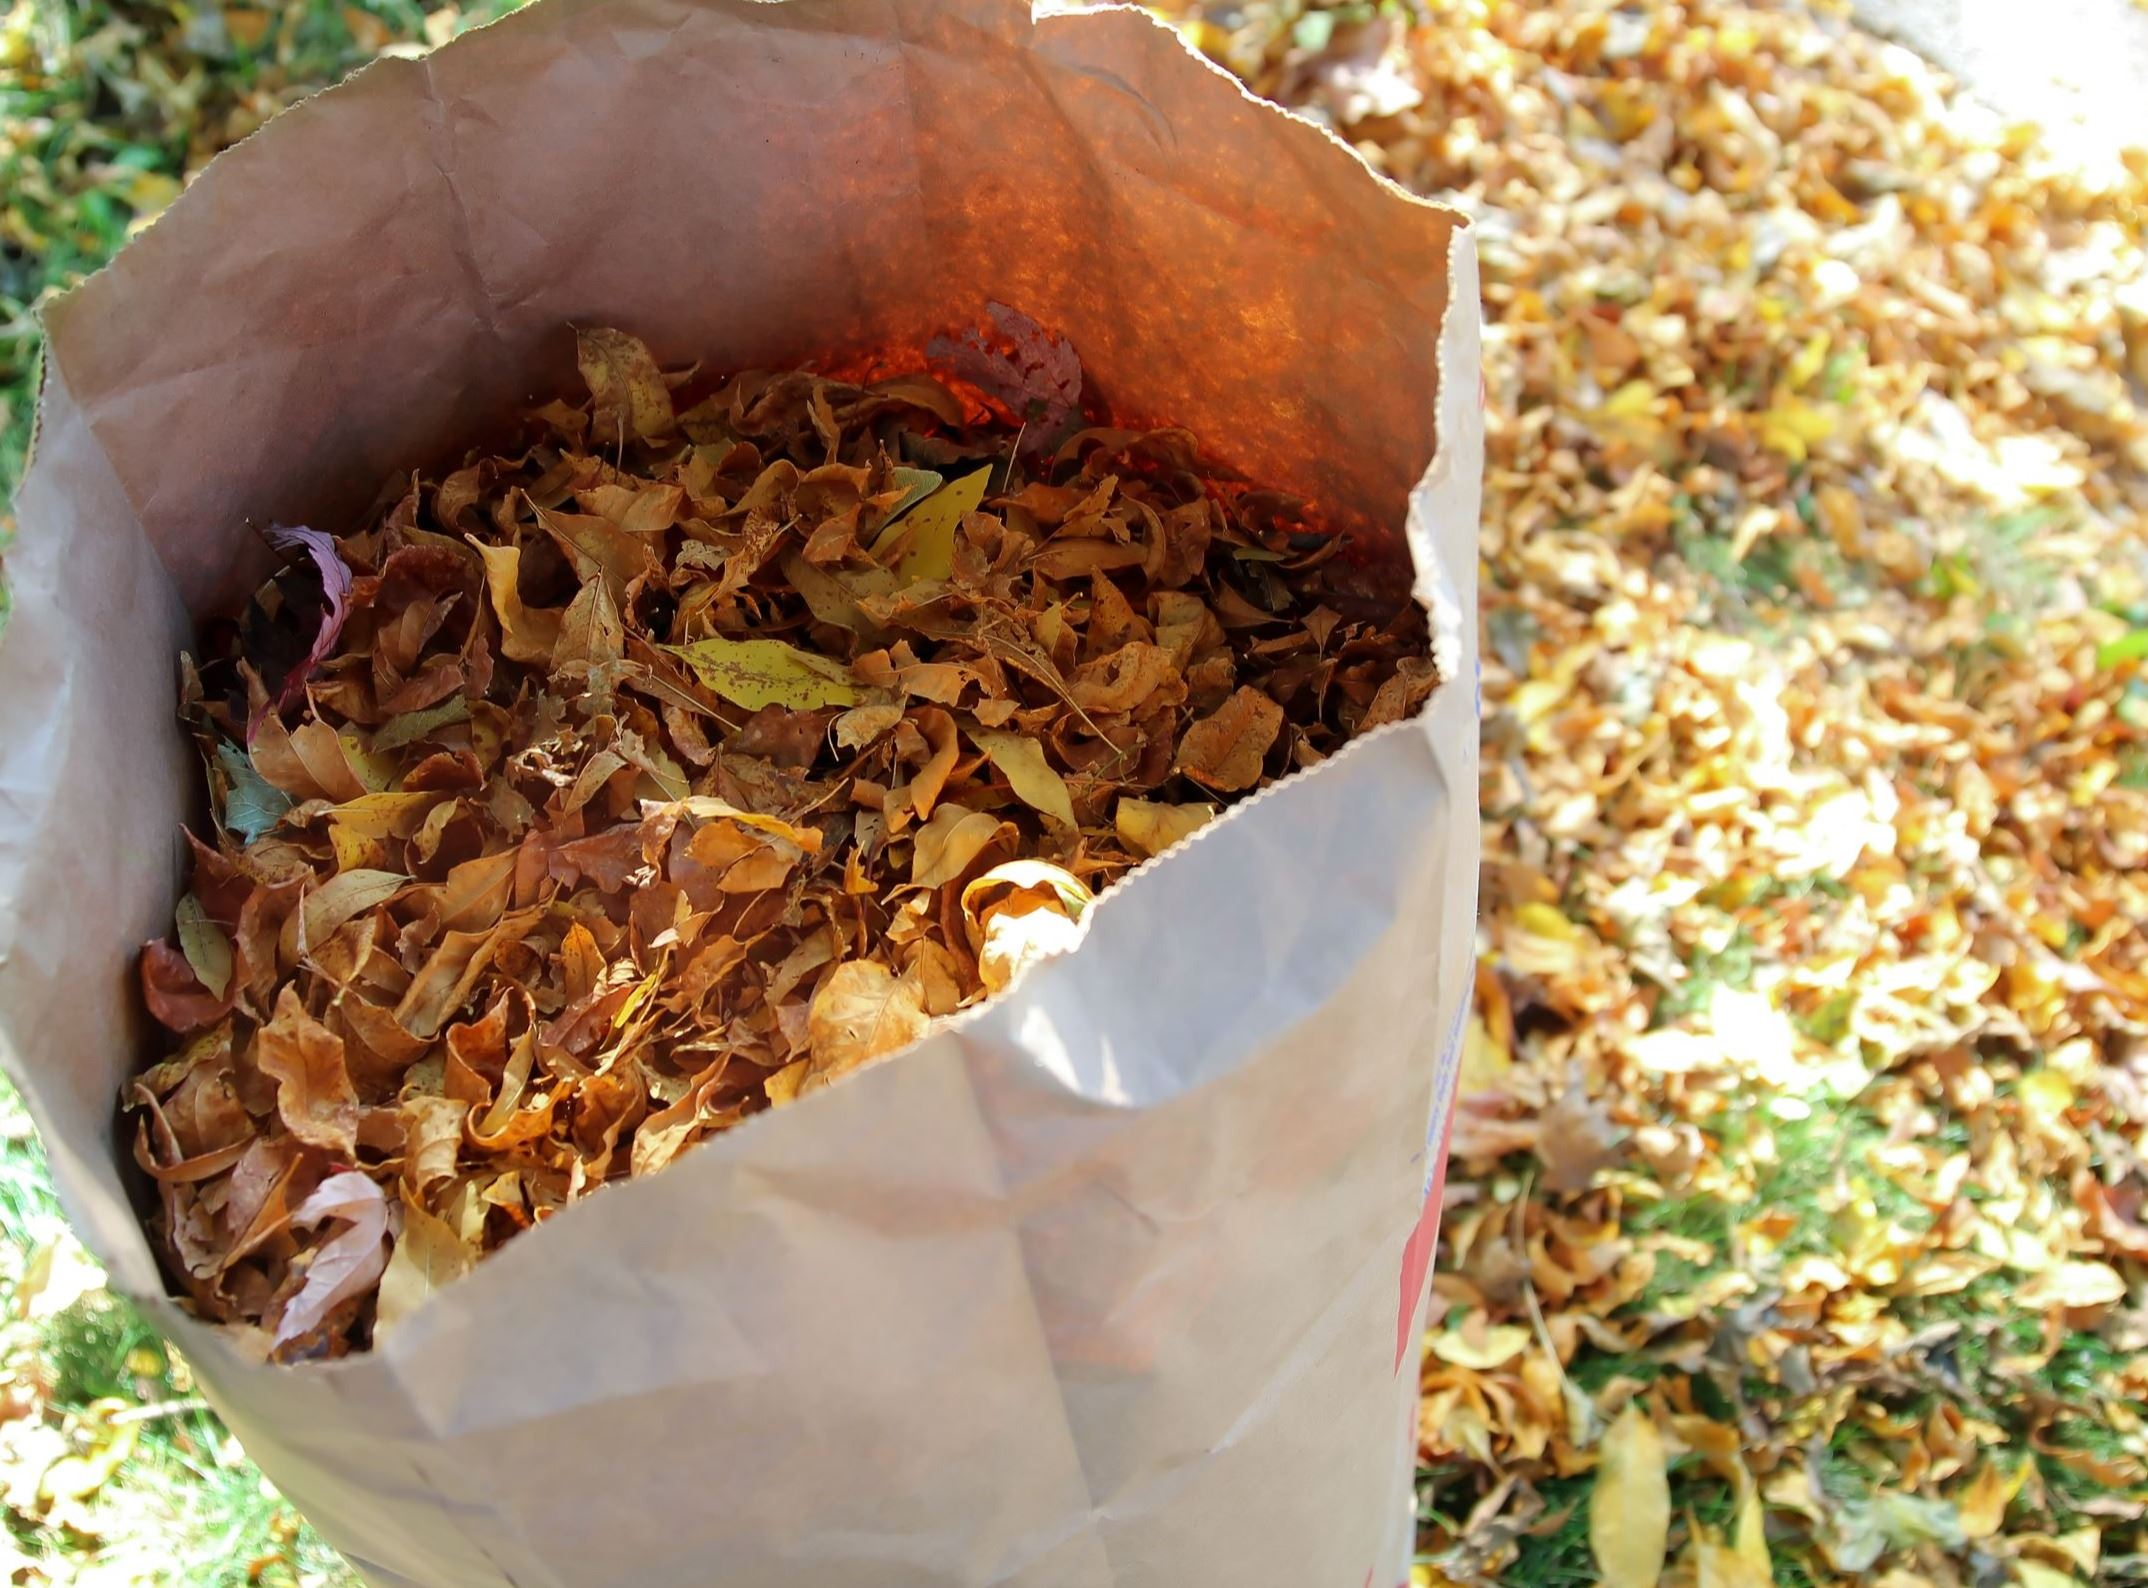 Photo of a bag of leaves standing upright on top of a pile of leaves. Leaves are red, yellow, orange